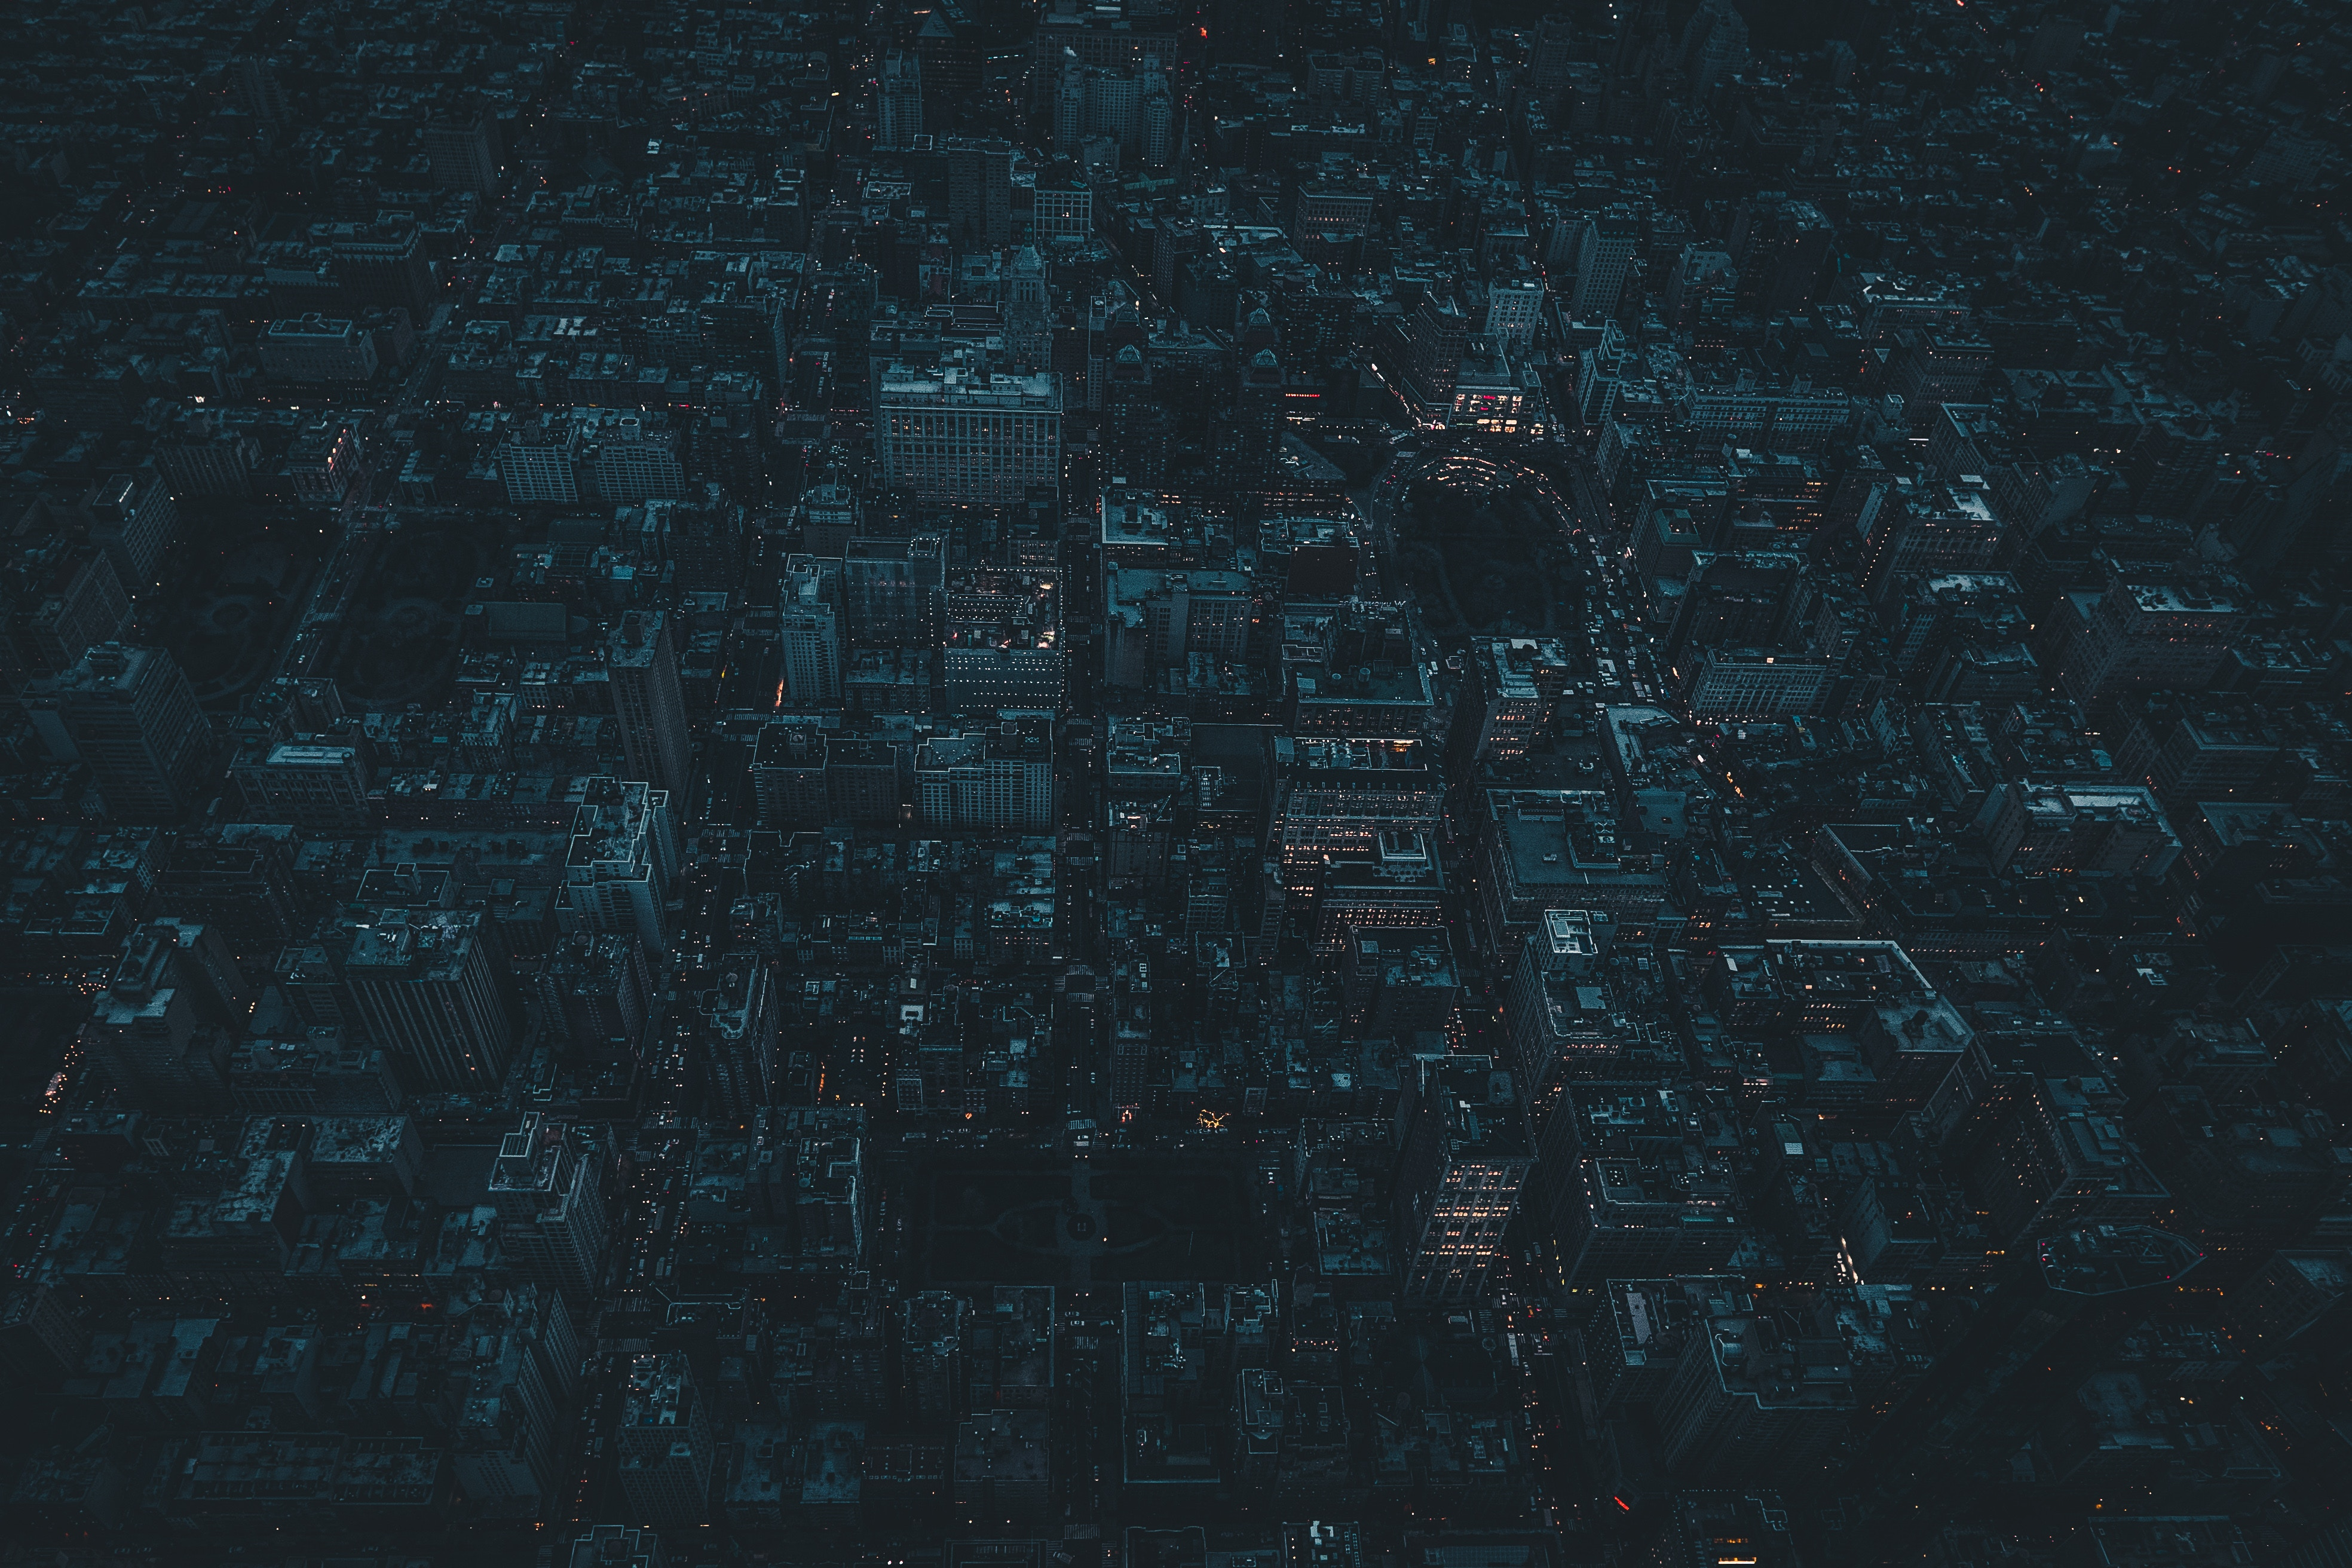 121036 free wallpaper 720x1520 for phone, download images Night, Usa, View From Above, Dark, Night City, City Lights, United States, Megapolis, Megalopolis, New York 720x1520 for mobile